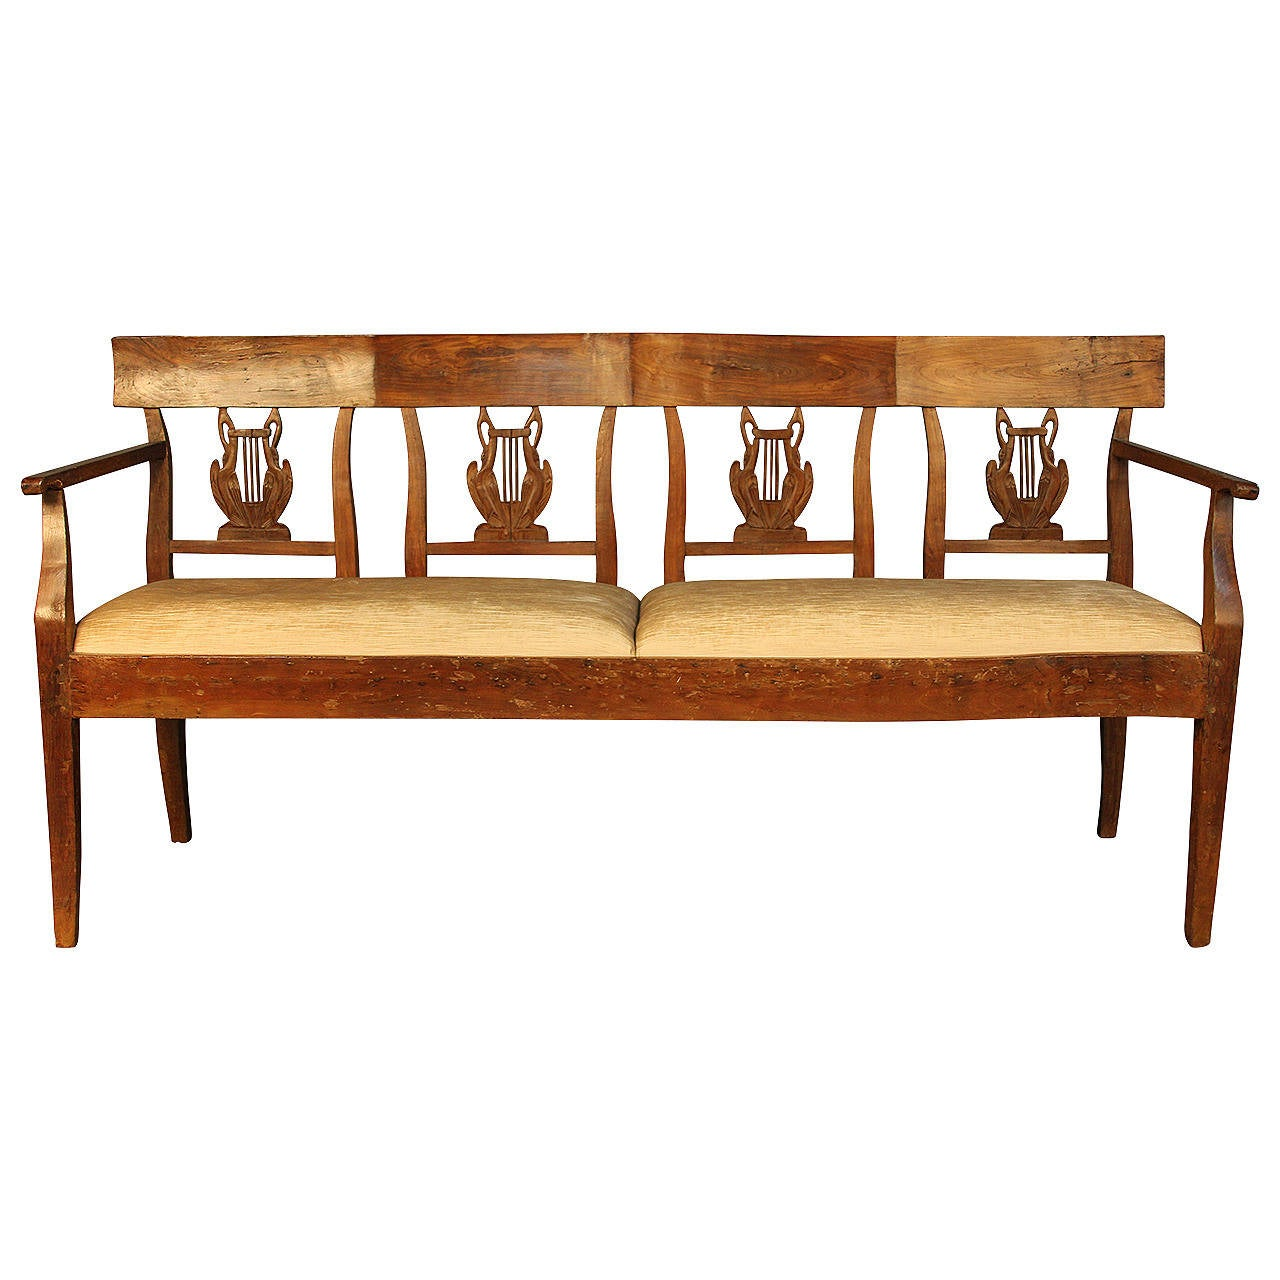 Upholstered Dining Bench With Back Beautiful Dining Bench